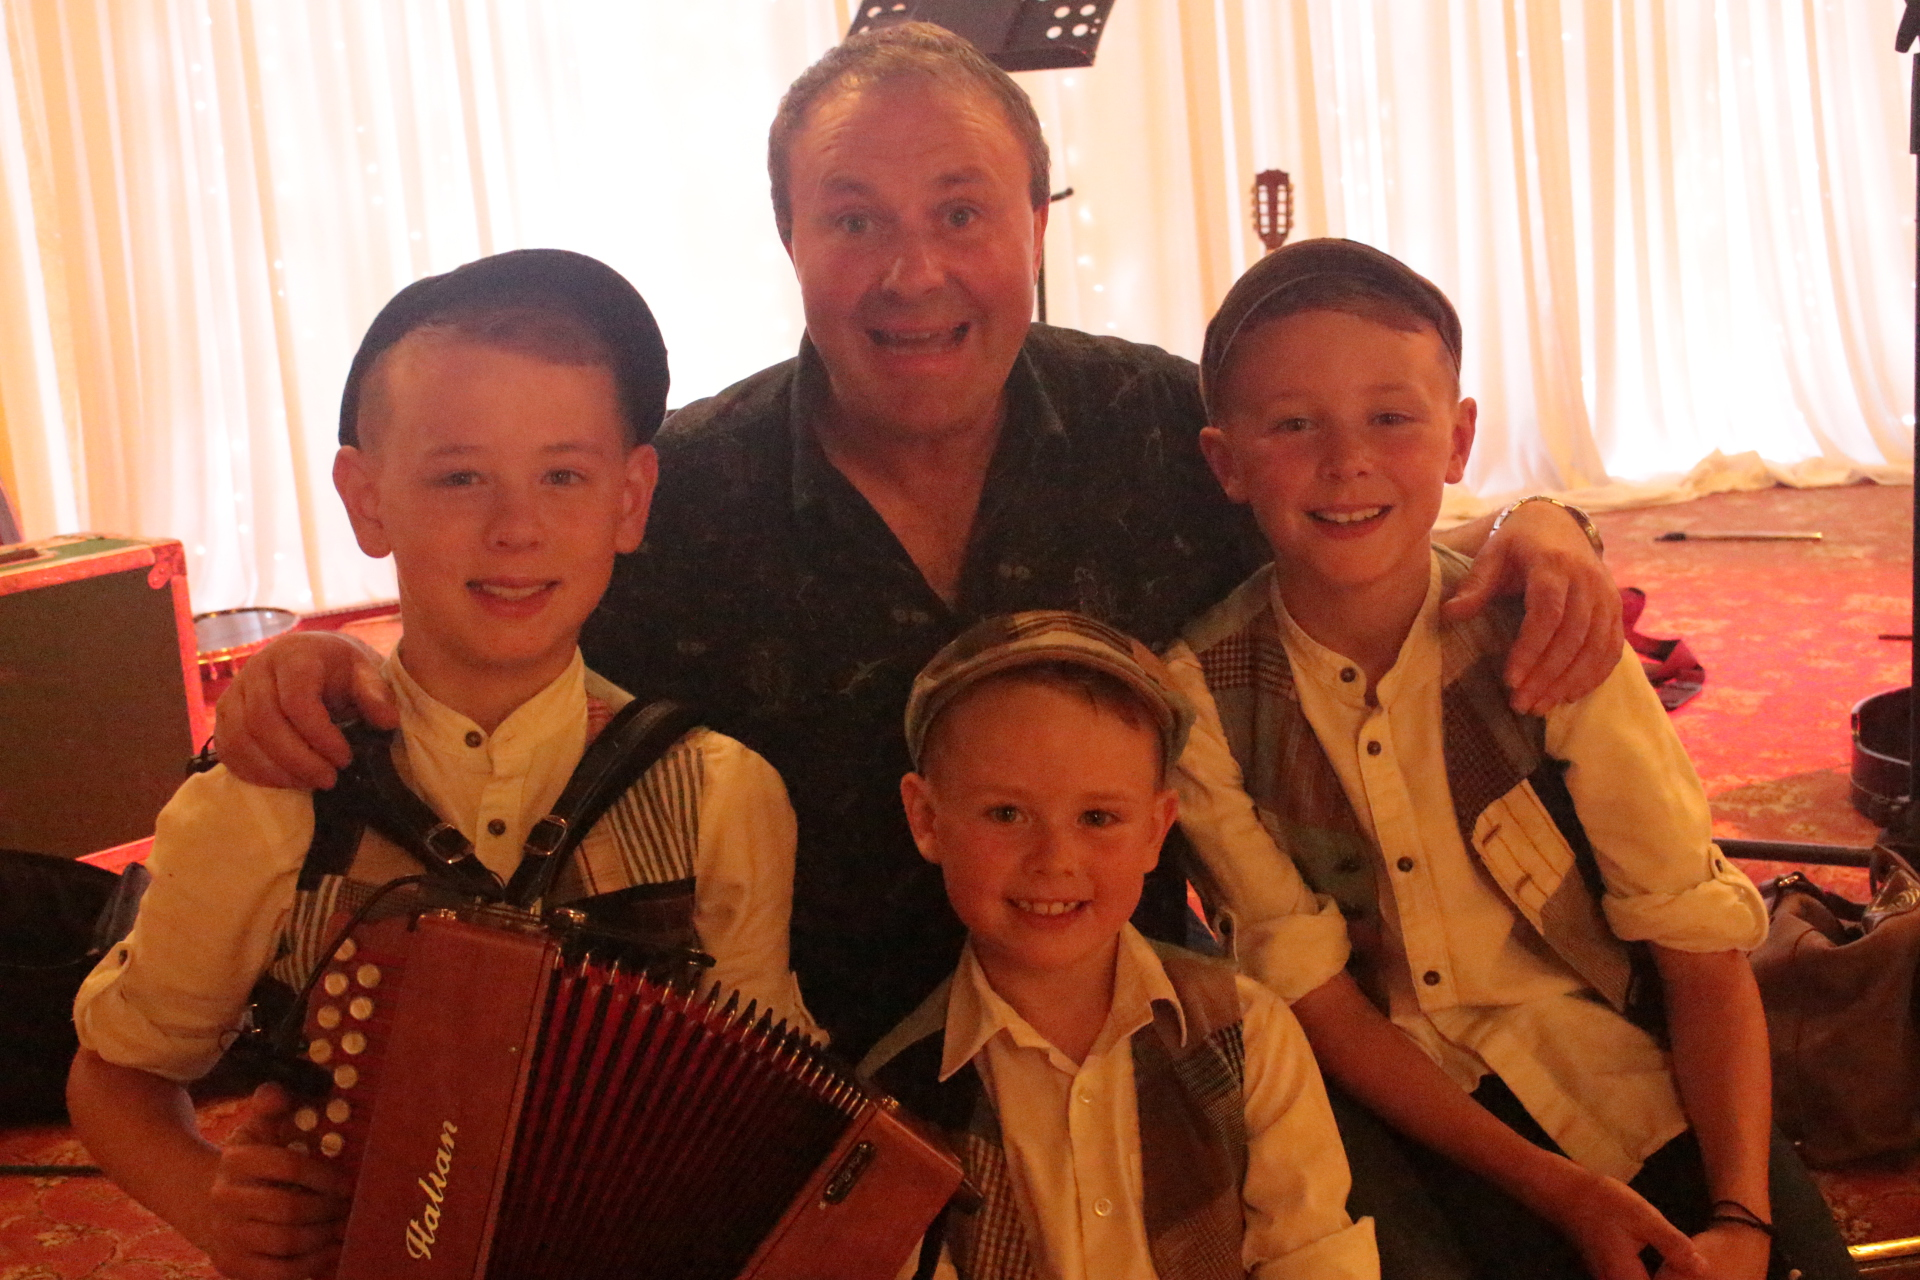 The Boys with Brian O'Sullivan